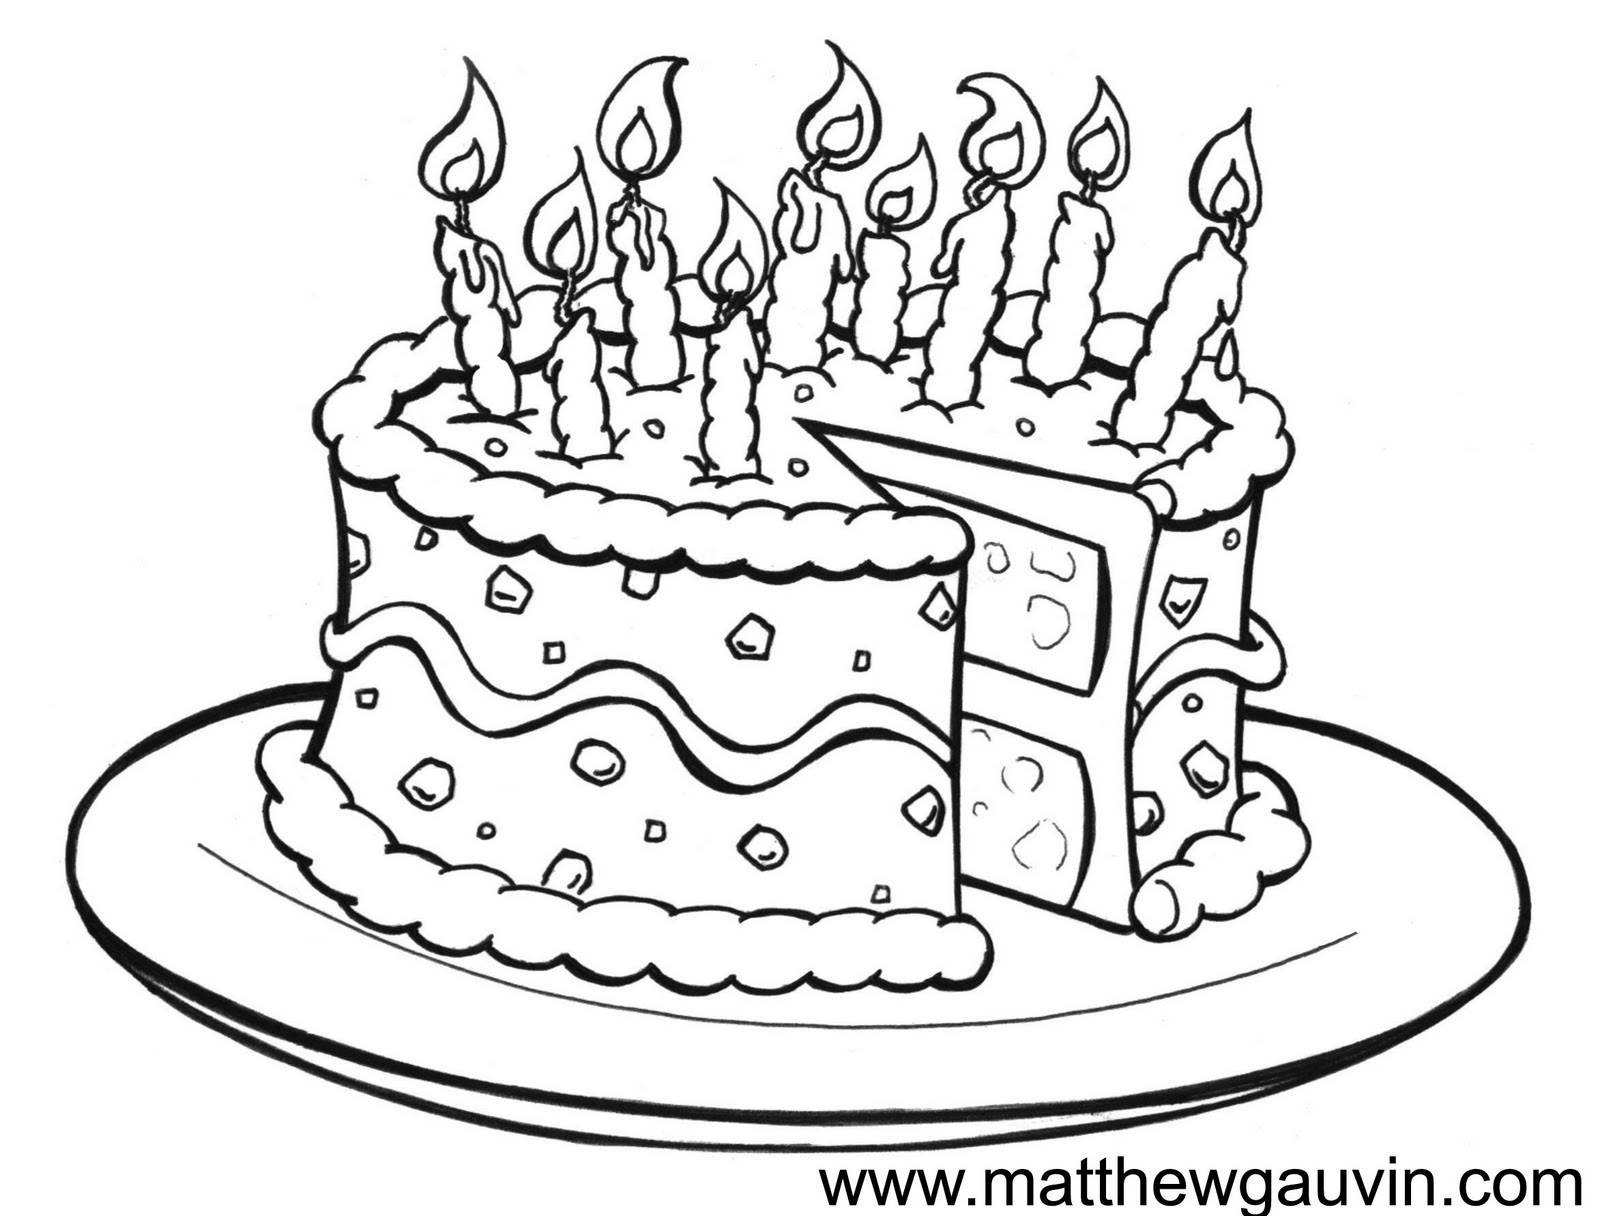 1600x1216 Birthday Cake Drawing Luxury Birthday Drawings Design Best